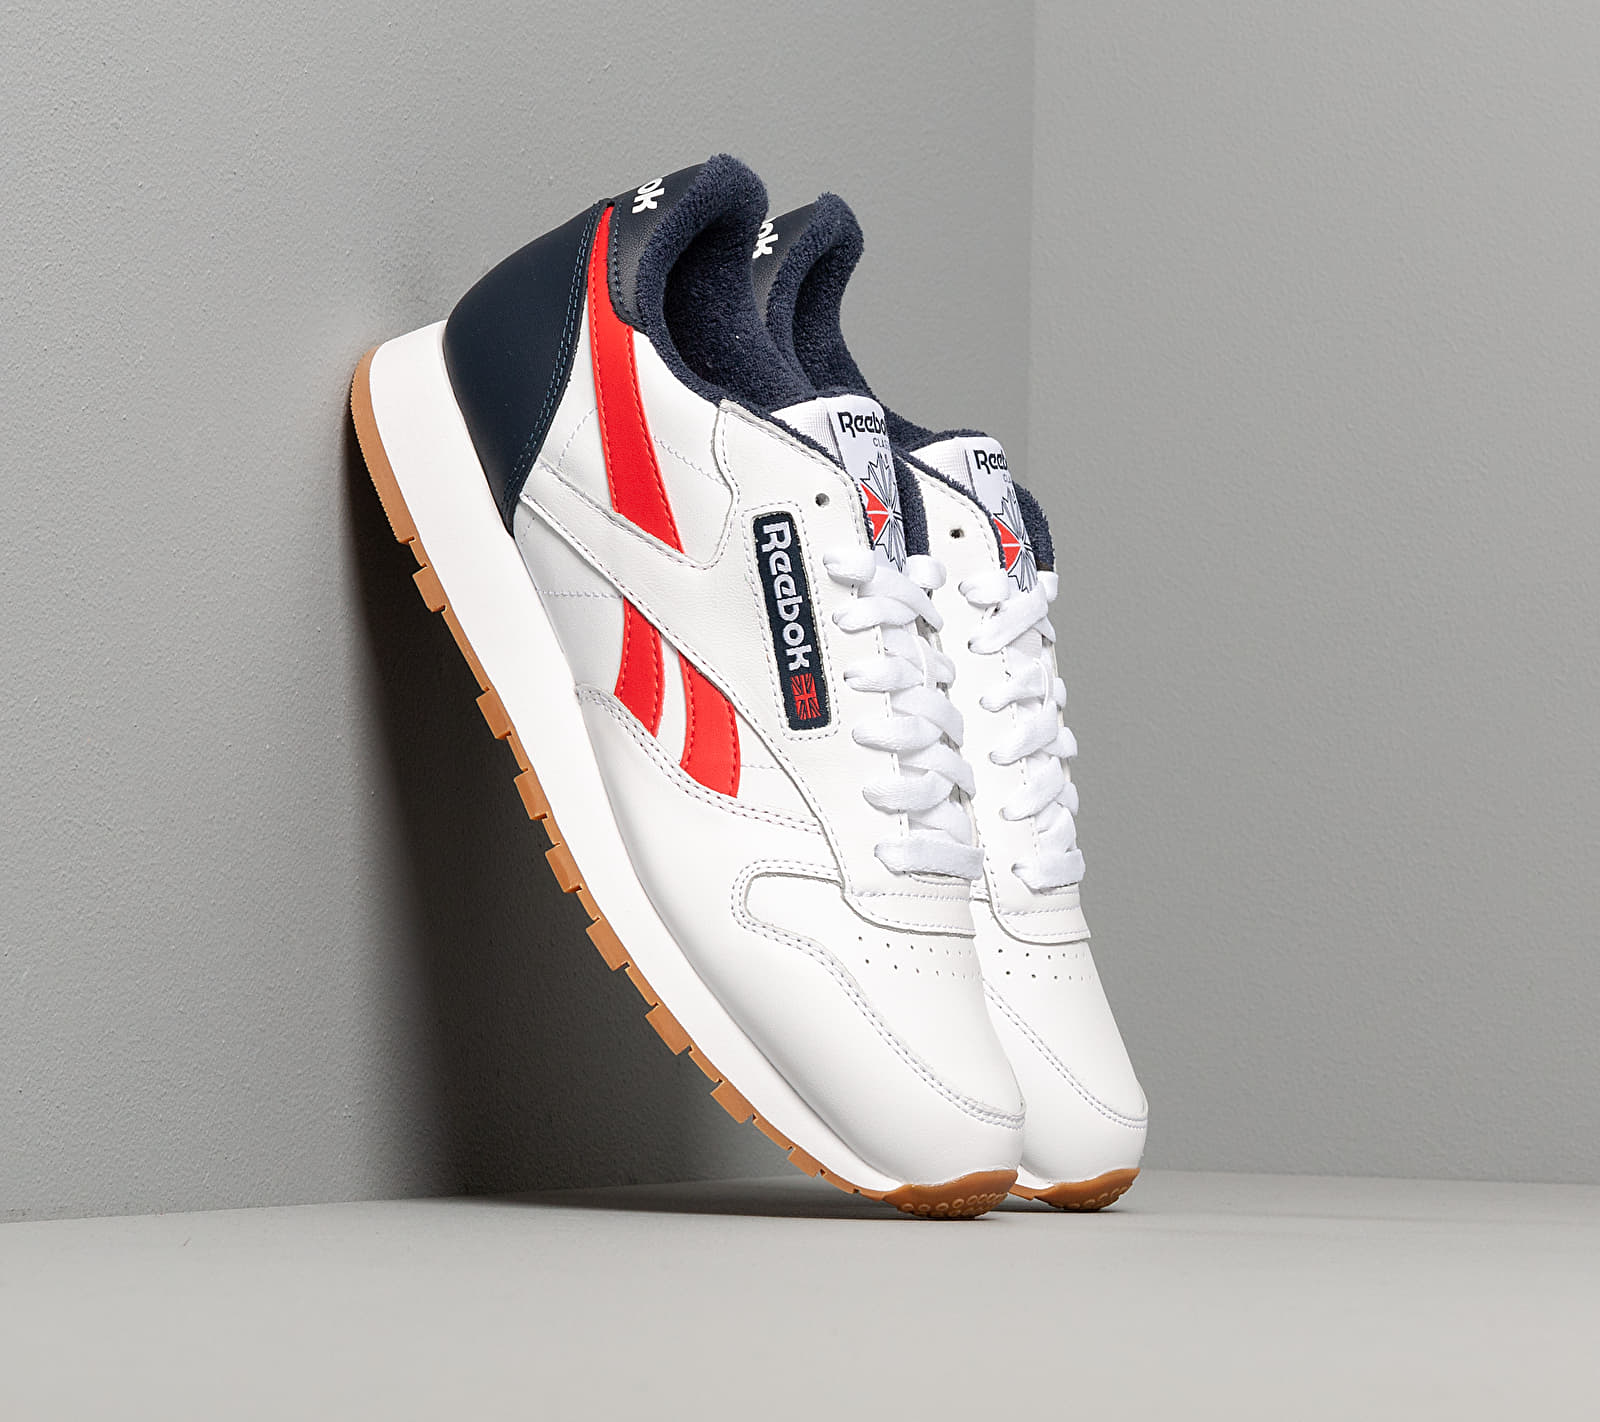 Reebok Classic Leather MU White/ Collegiate Navy/ Radiant Red EUR 45